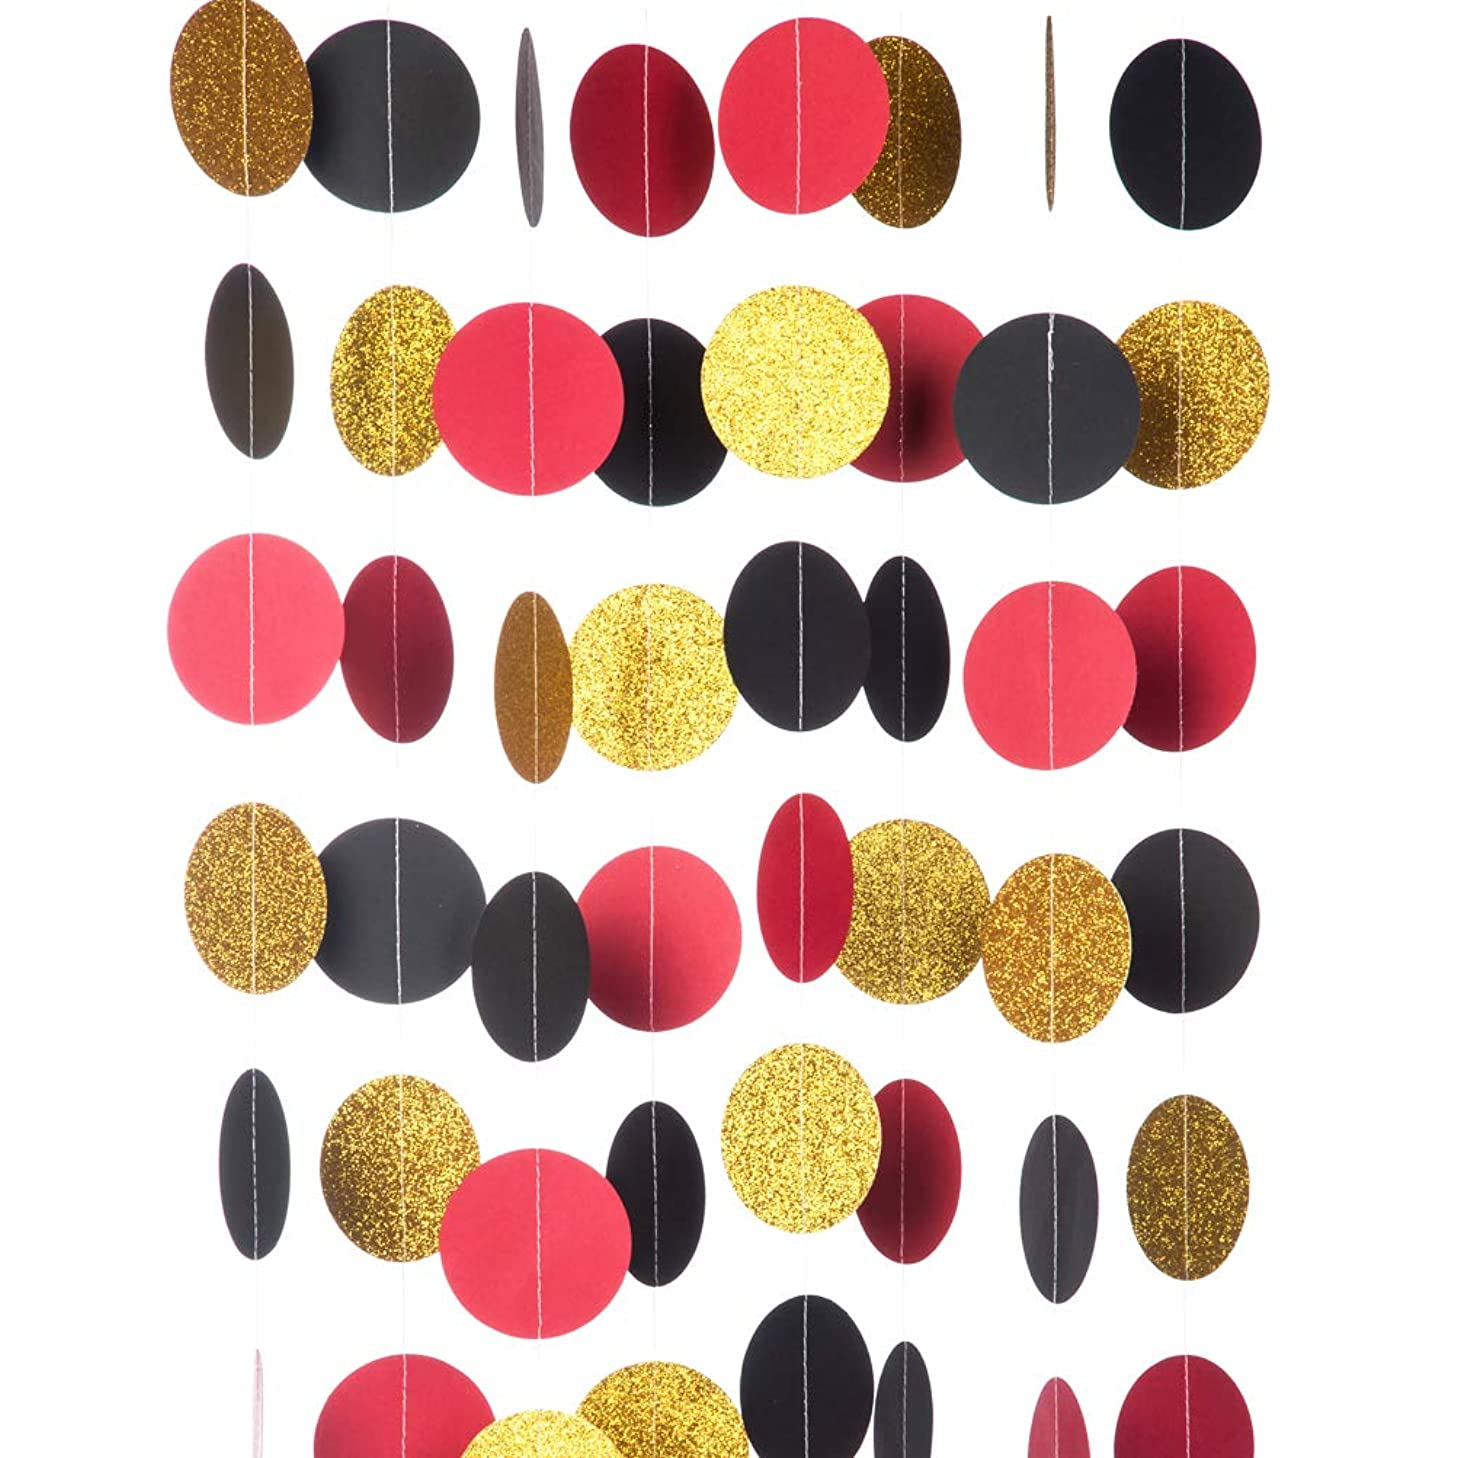 MOWO Glitter Paper Garland Circle Dots Hanging Decor,2.5'' in Diameter,10-feet(Gold Glitter/red/Black,2pc)